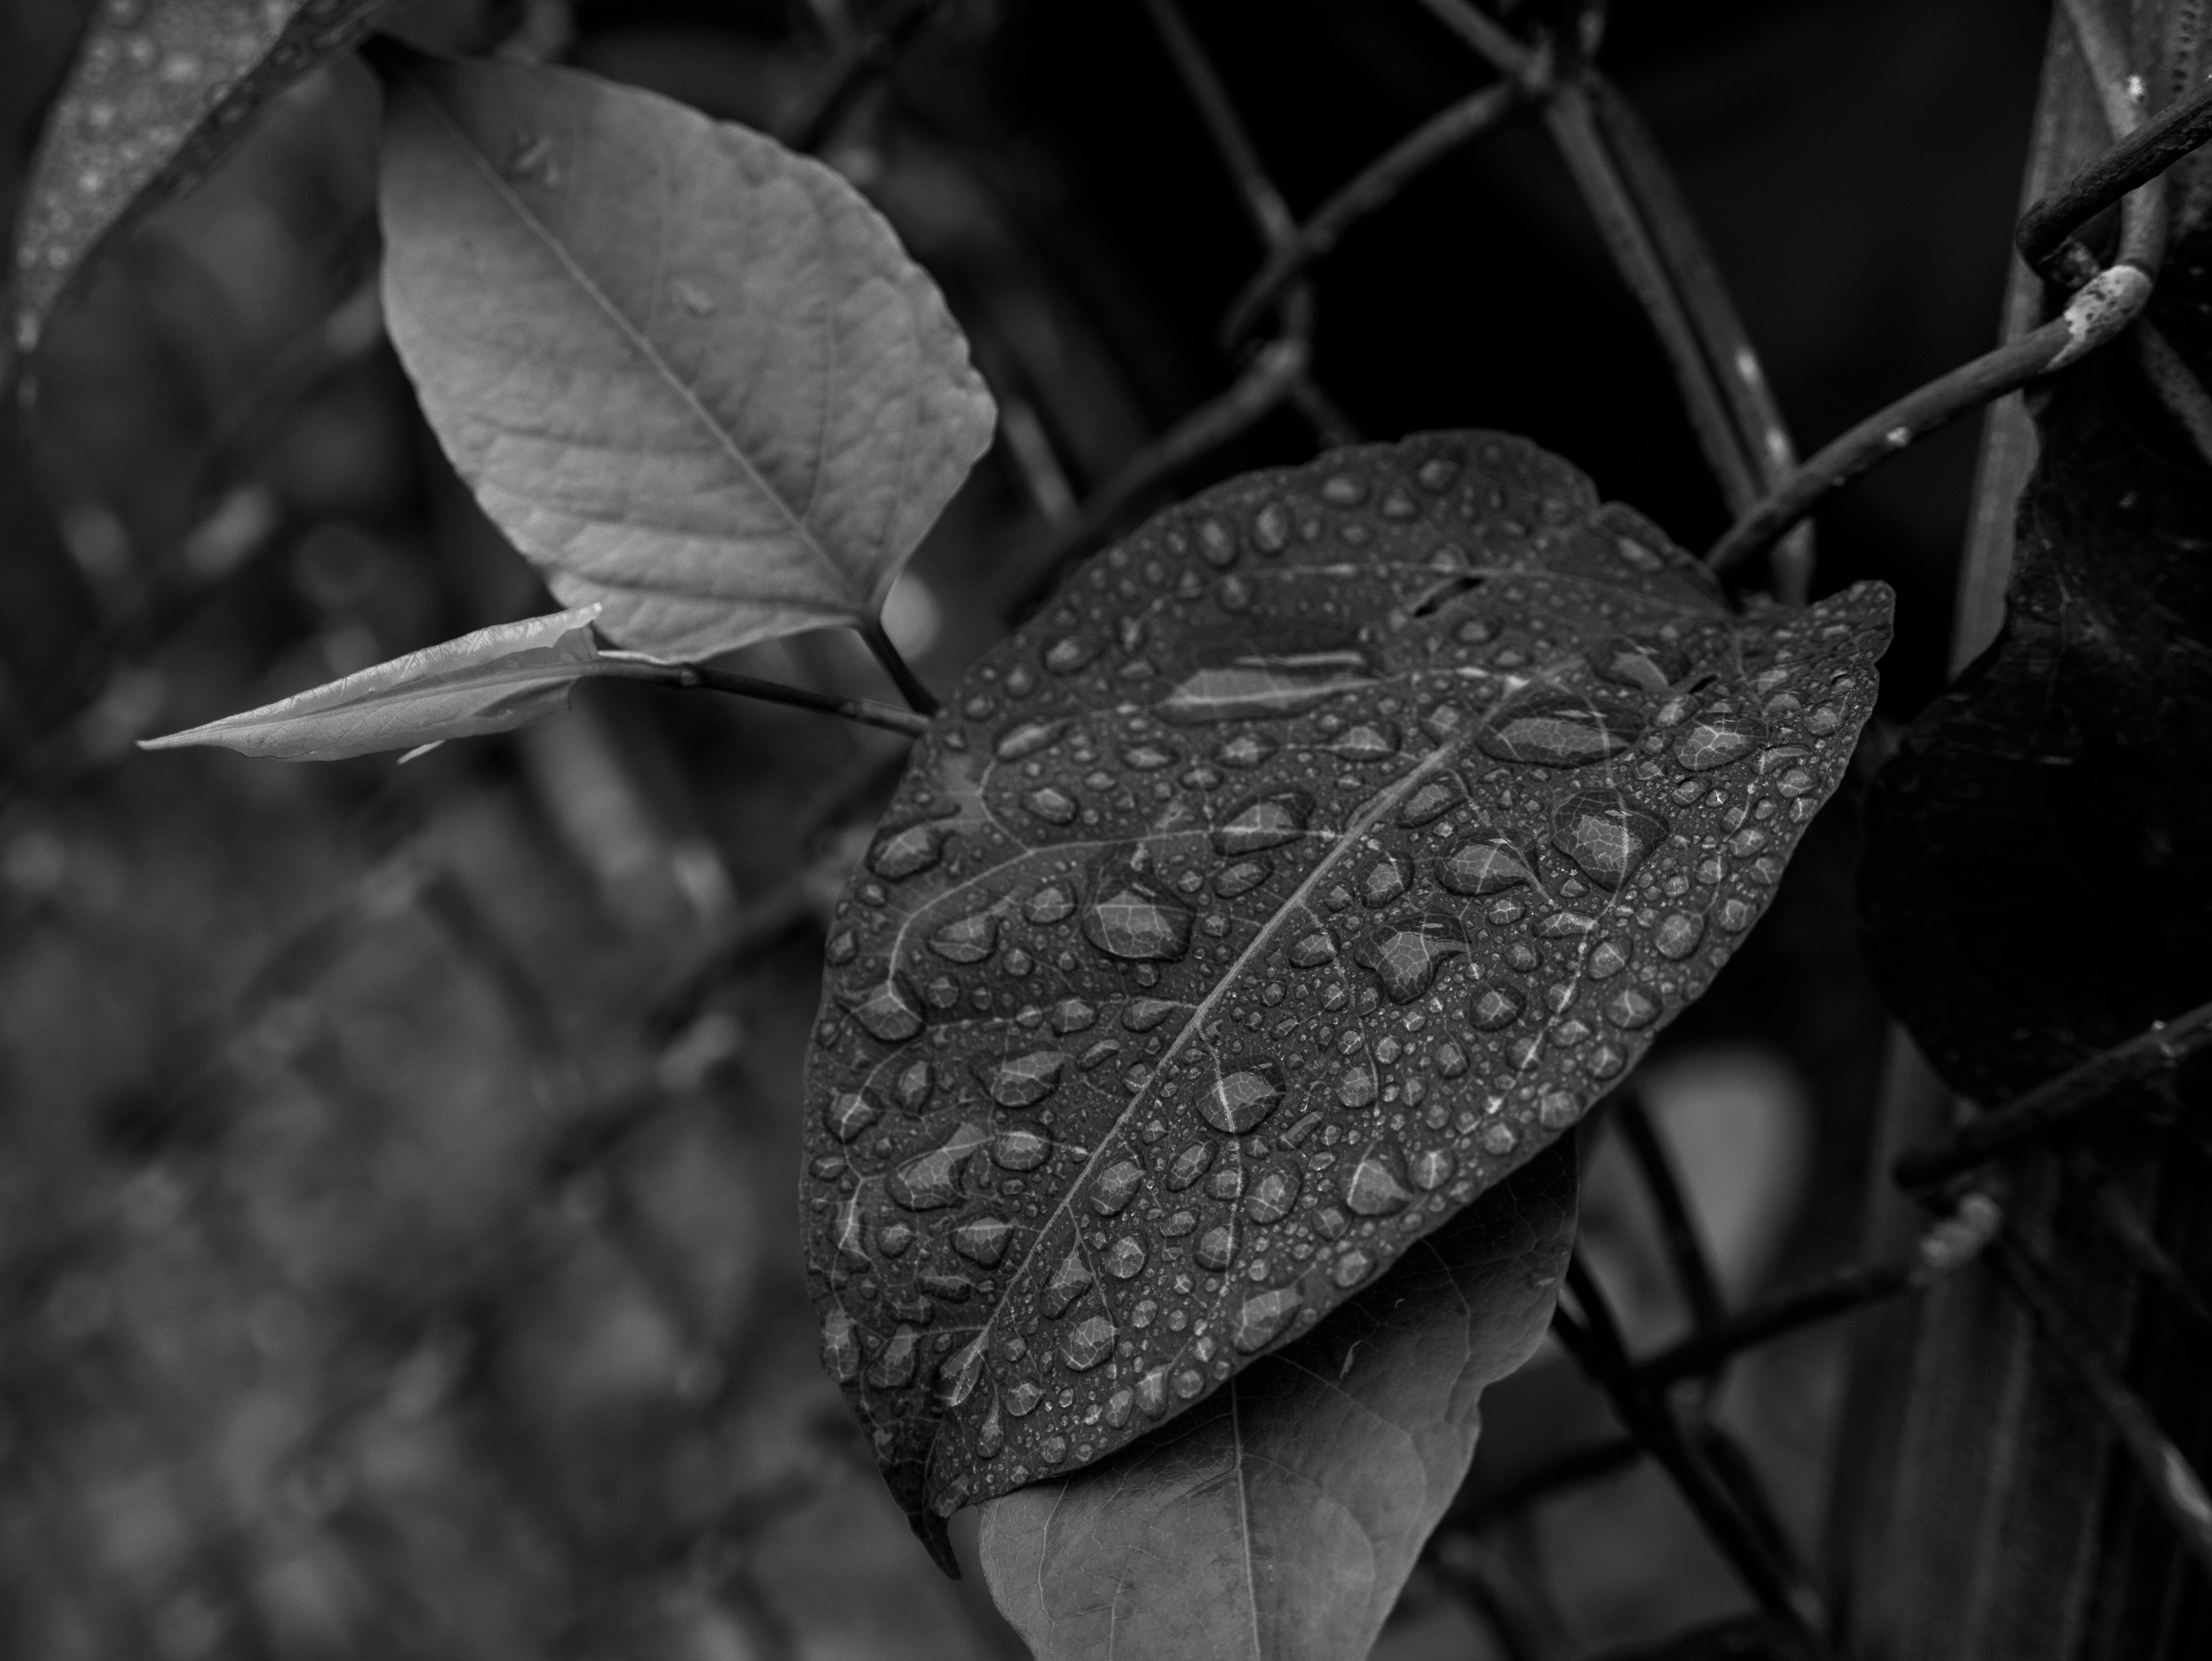 A photo taken by the Panasonic Lumix G7 of a leaf.